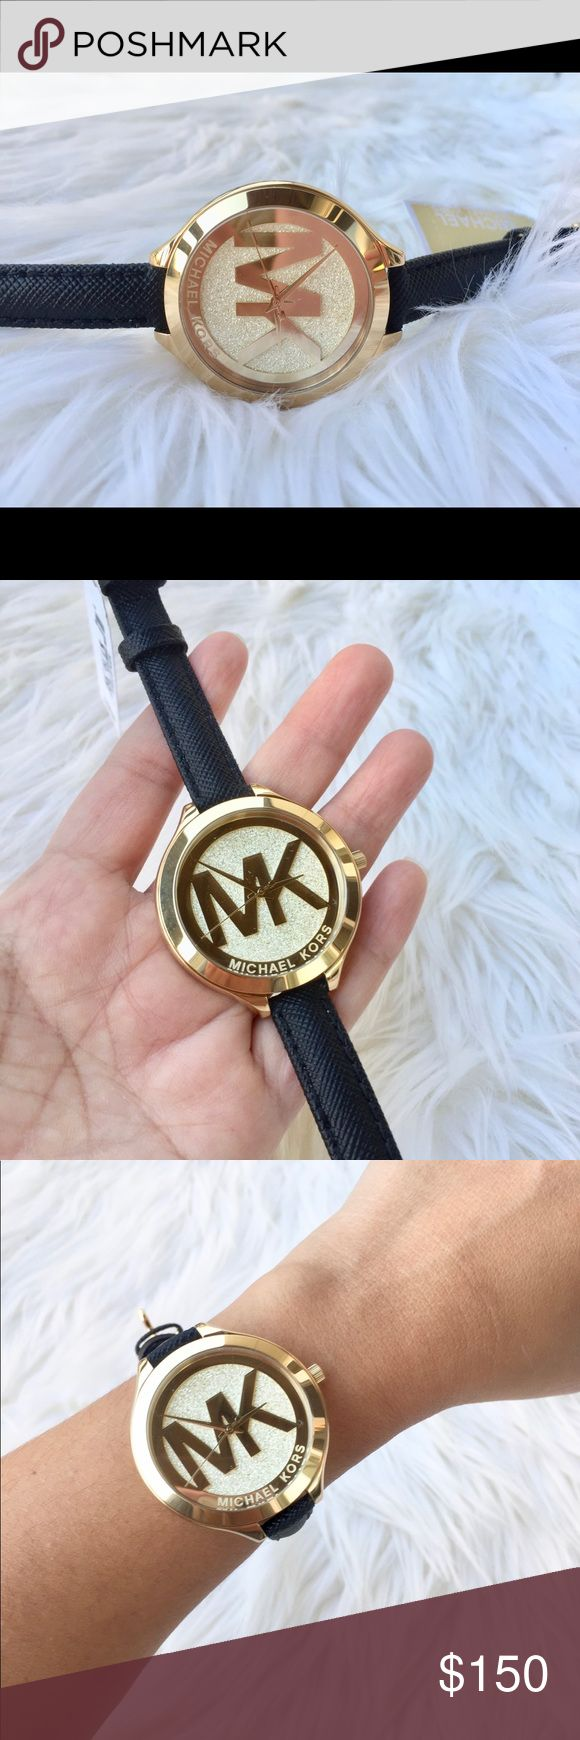 Michael Kors Round shape analog crystal Dial NWT! MICHAEL KORS MK2392 ROUND SHAPE ANALOG CRYSTAL FACE LADIES WATCH BRAND NEW!!!!!100% Genuine and Authentic. *Black saffiano leather strap. *Gold-tone Stainless Steel case. *Gold-tone dial with crush pave accents, gold-tone hands and logo. *Quartz movment. *Water resistant to 50 meters.  *Case 42mm.                                          Pictures are taken from the actual item !! Watch comes with original MK box and MANAUL Michael Kors…